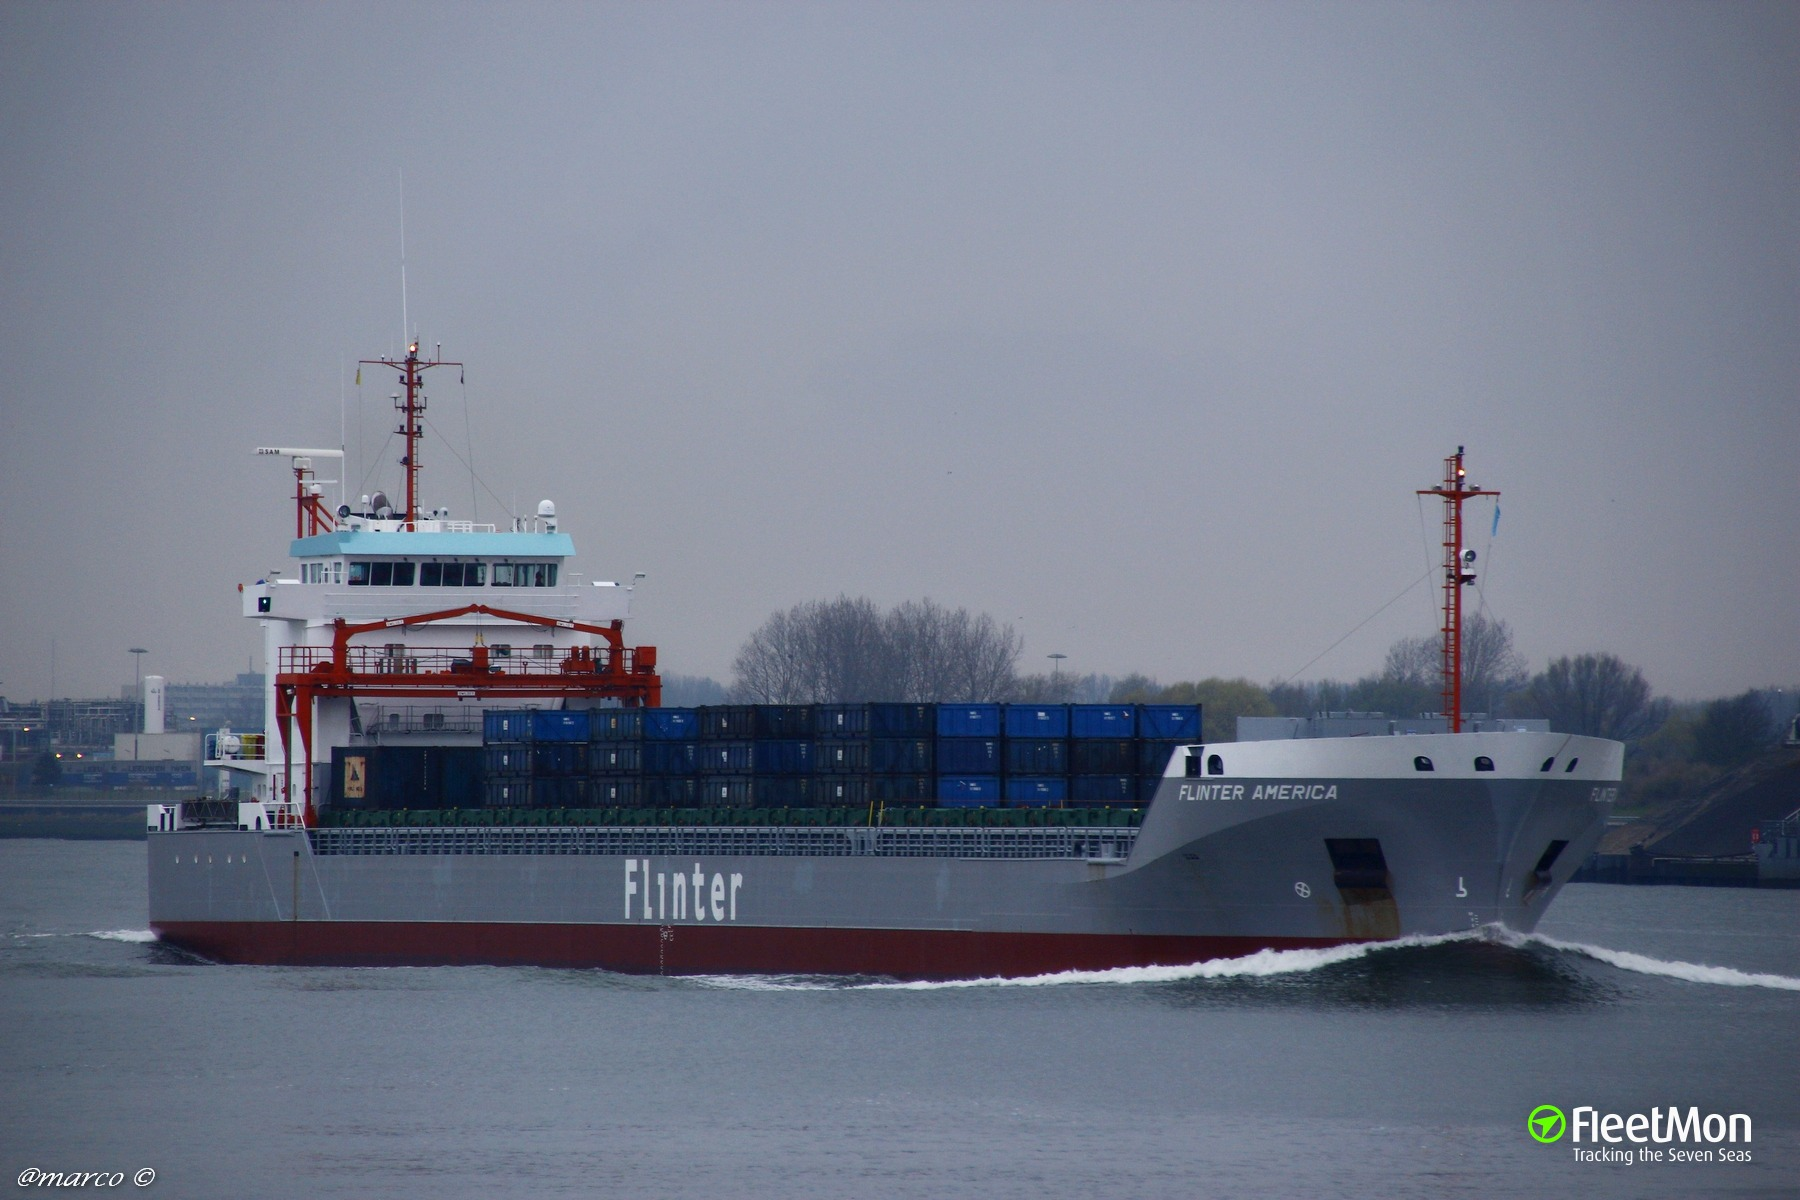 FLINTER AMERICA to be towed to Rotterdam